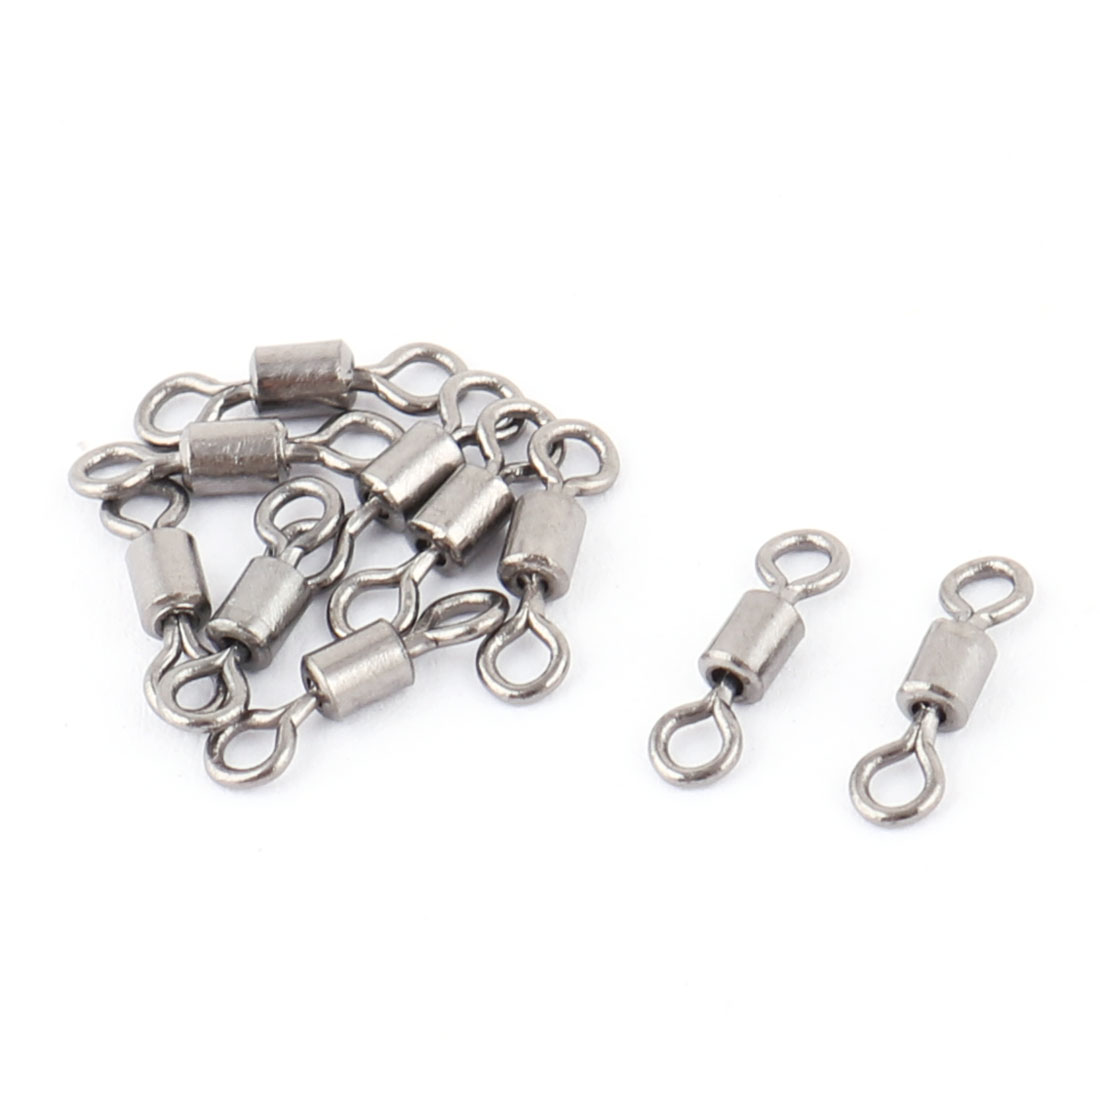 12 Pcs Silver Tone 8 Shaped Metal Fishing Crane Swivels 1cm